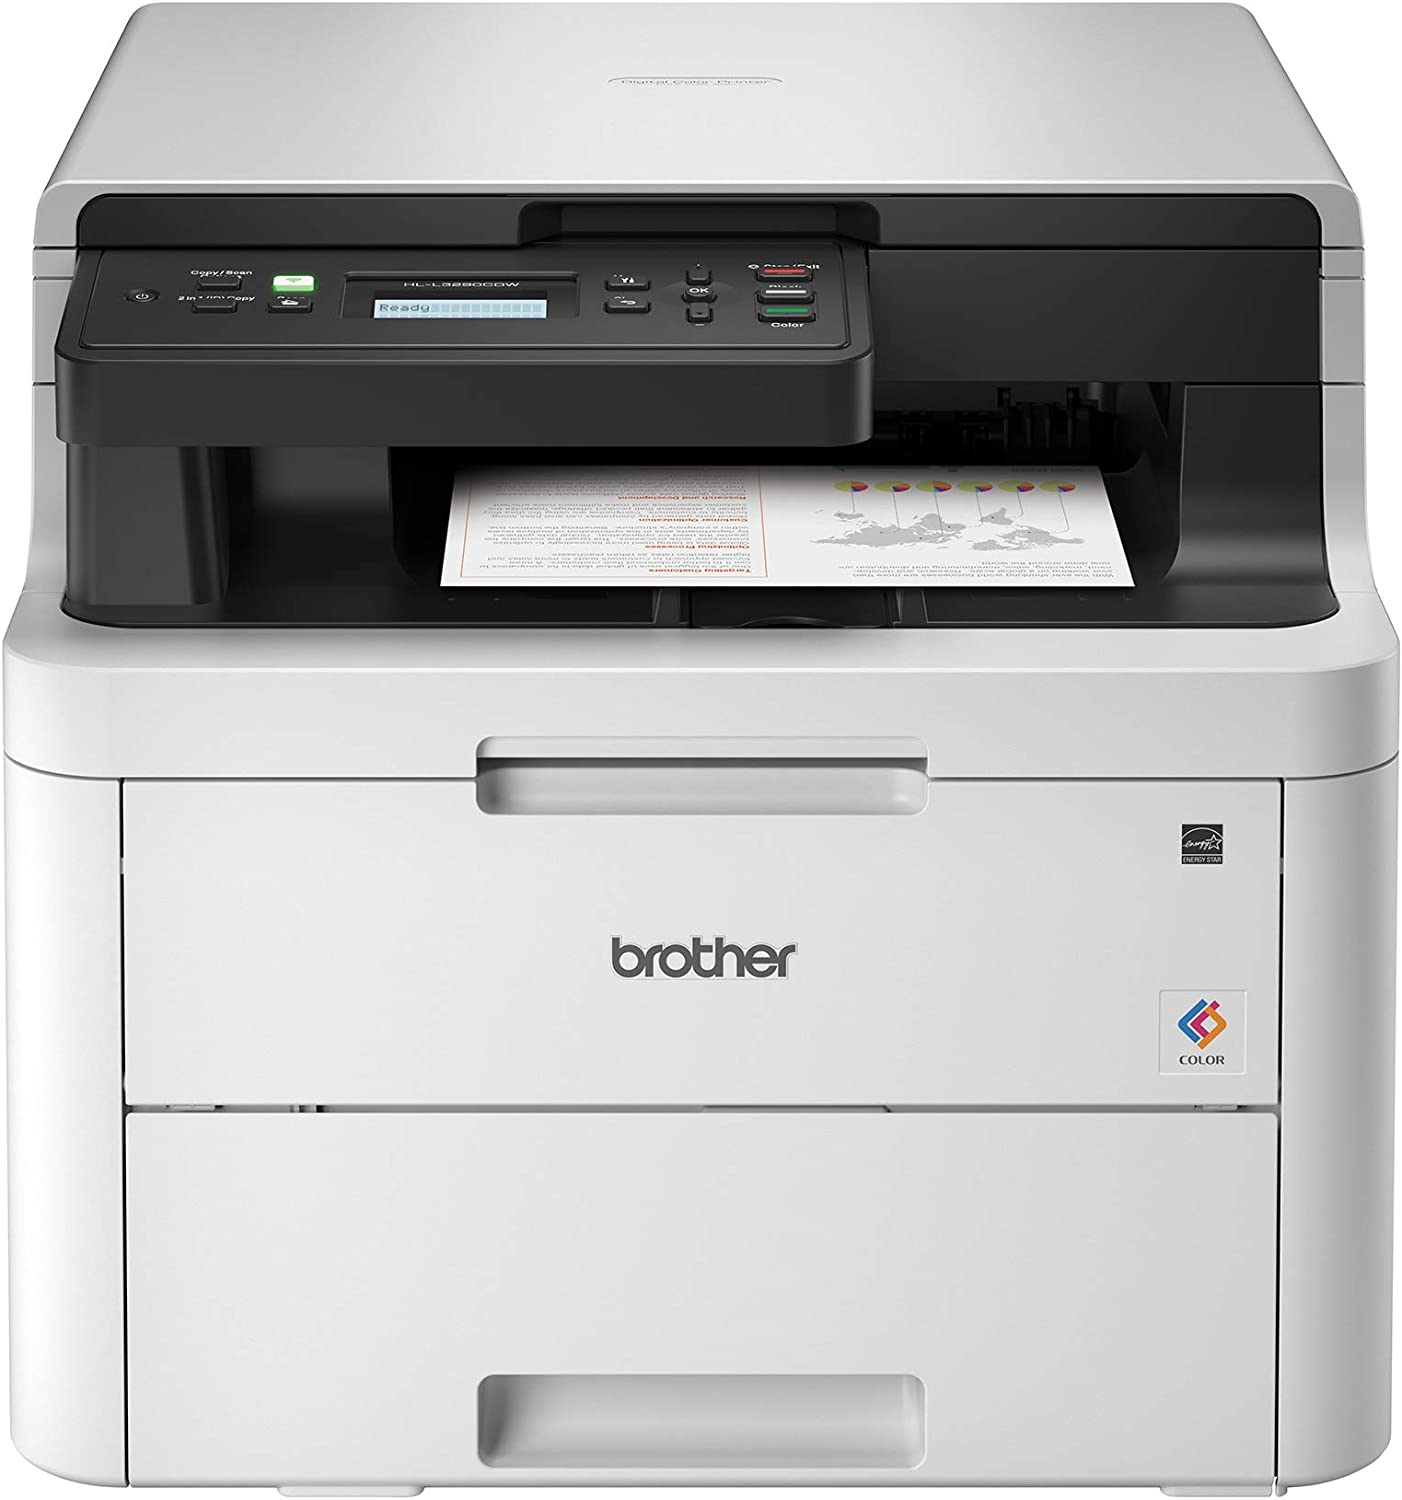 The 7 Best All in One Laser Printers for Small Business and Inkjet  Printers for Home in 2020 5